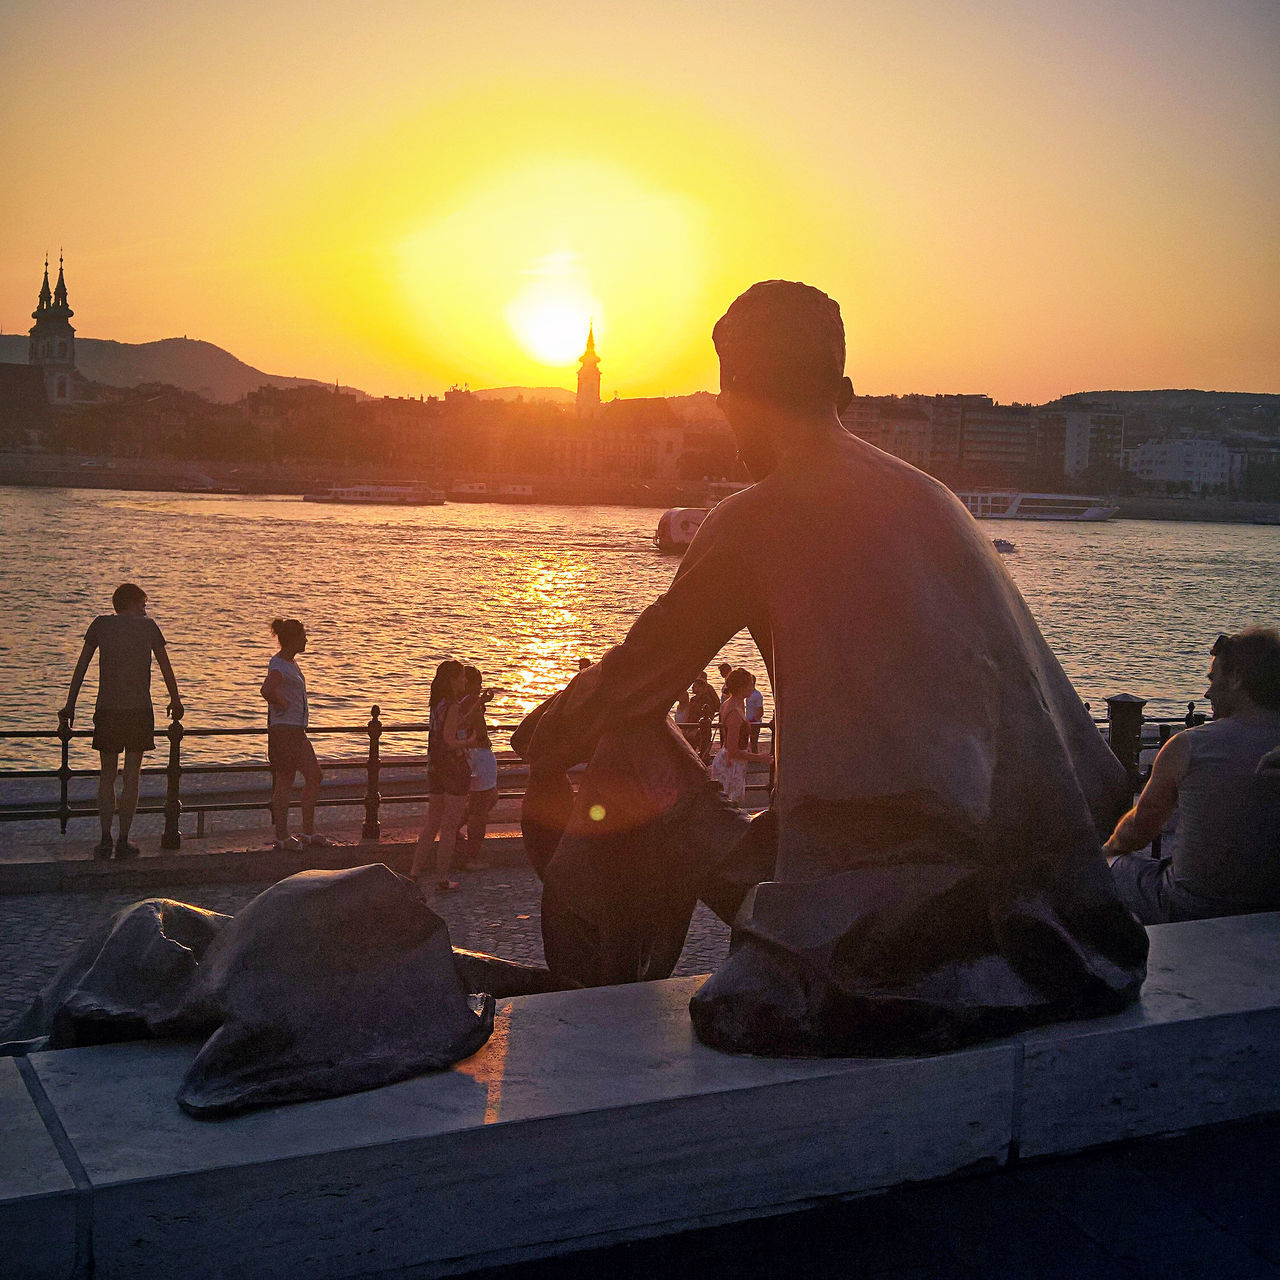 Beauty In Nature Danube József Attila Kossuth Square Leisure Activity Lifestyles Nature Orange Color Orszaghaz Outdoors Parliament River Scenics Showcase July Sitting Sky Statue Summer Sun Sunbeam Sunlight Sunset Sunset_collection Tranquility Water